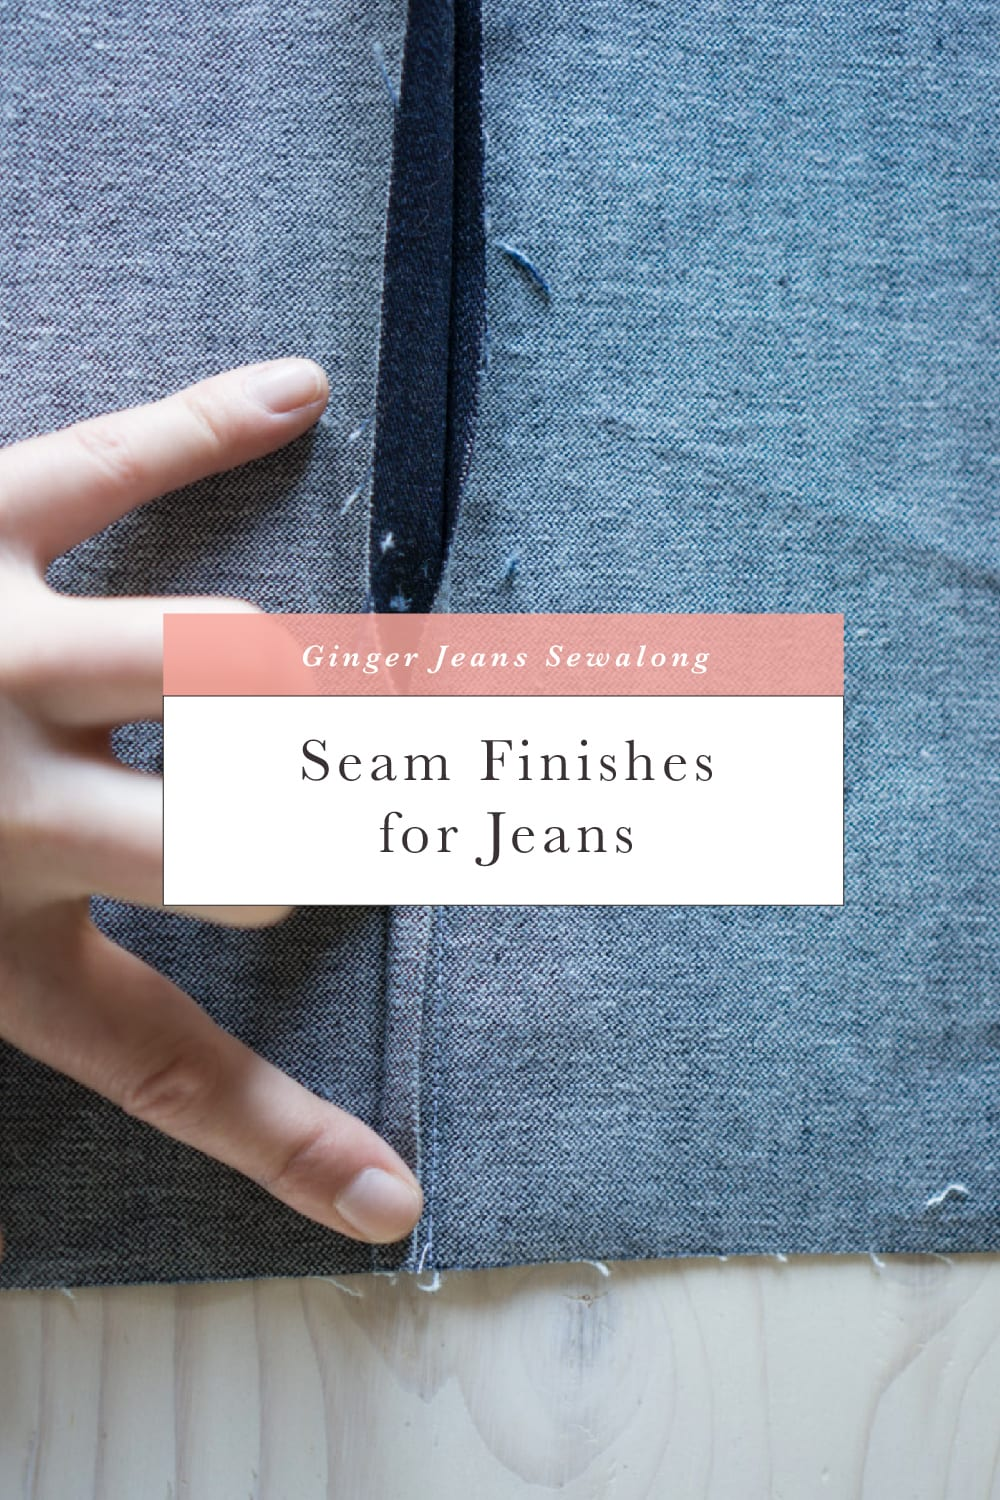 Seam finishes for jeans // Ginger Jeans Sewalong // Closet Case Patterns